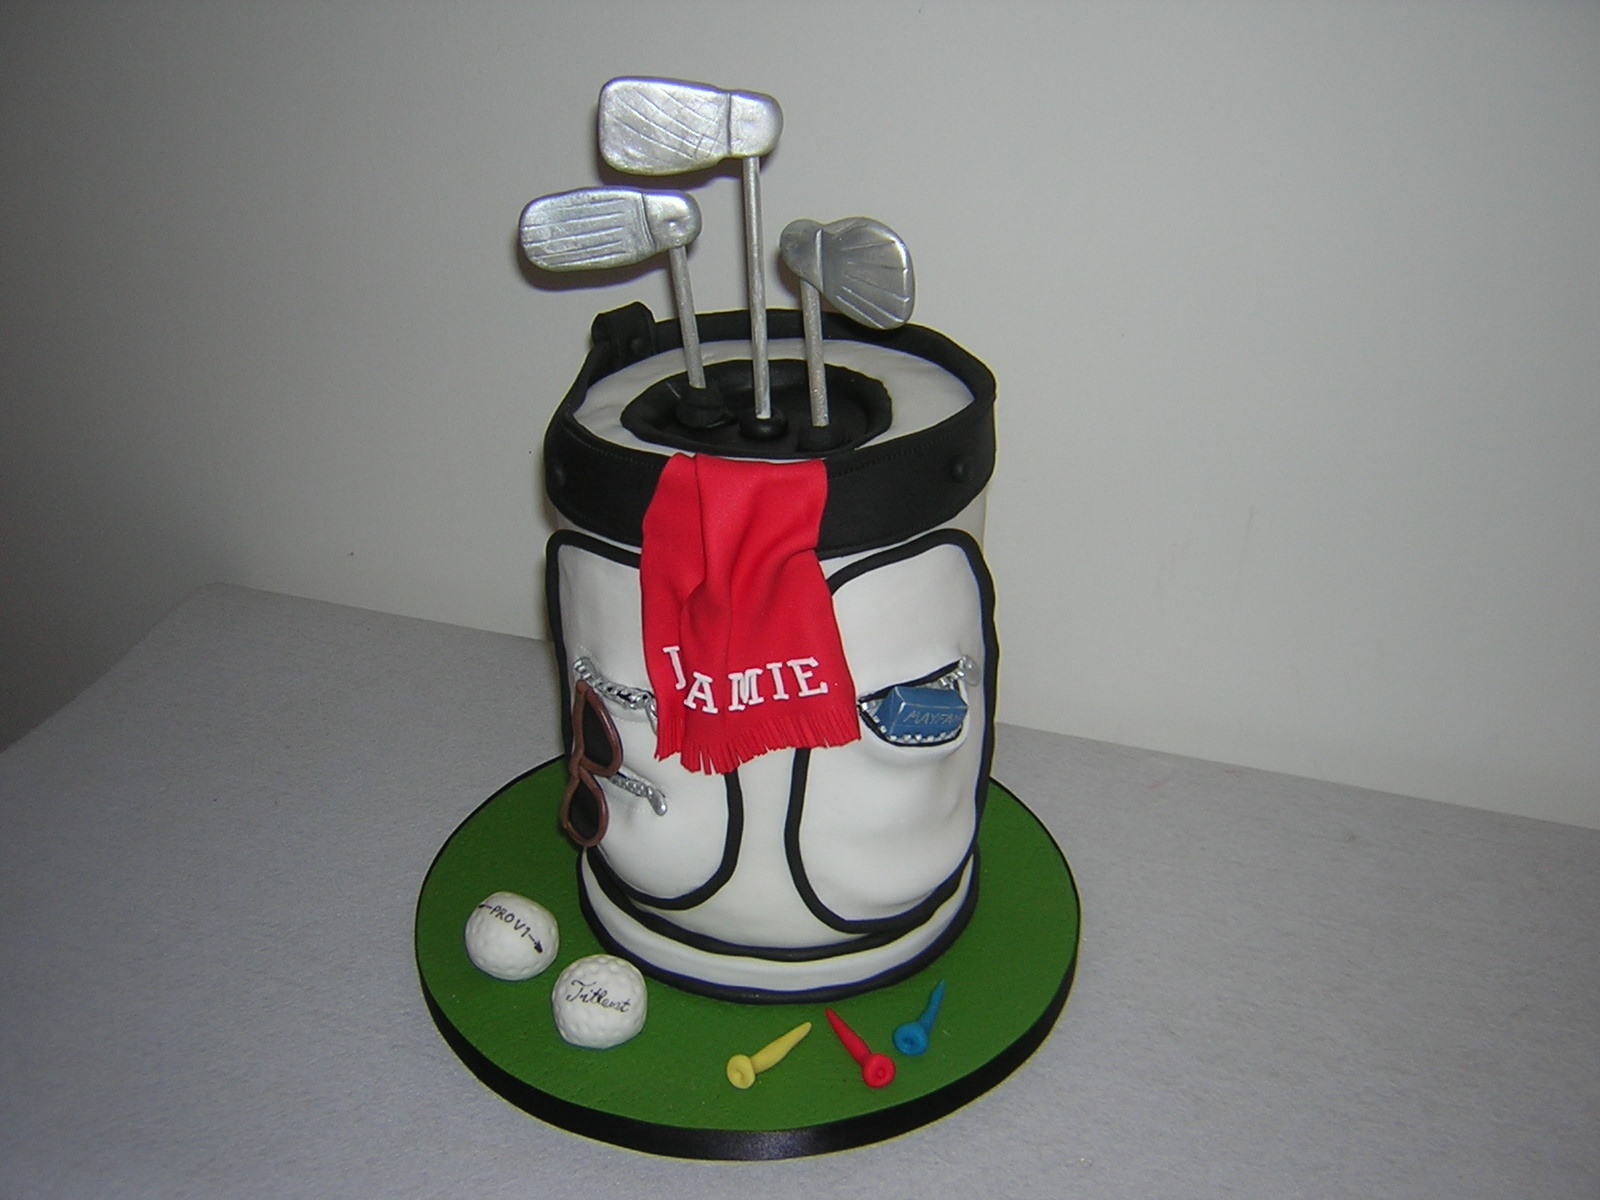 Golf Bag Cake Images : Golf Bag Cake Happy Pictures to Pin on Pinterest - PinsDaddy